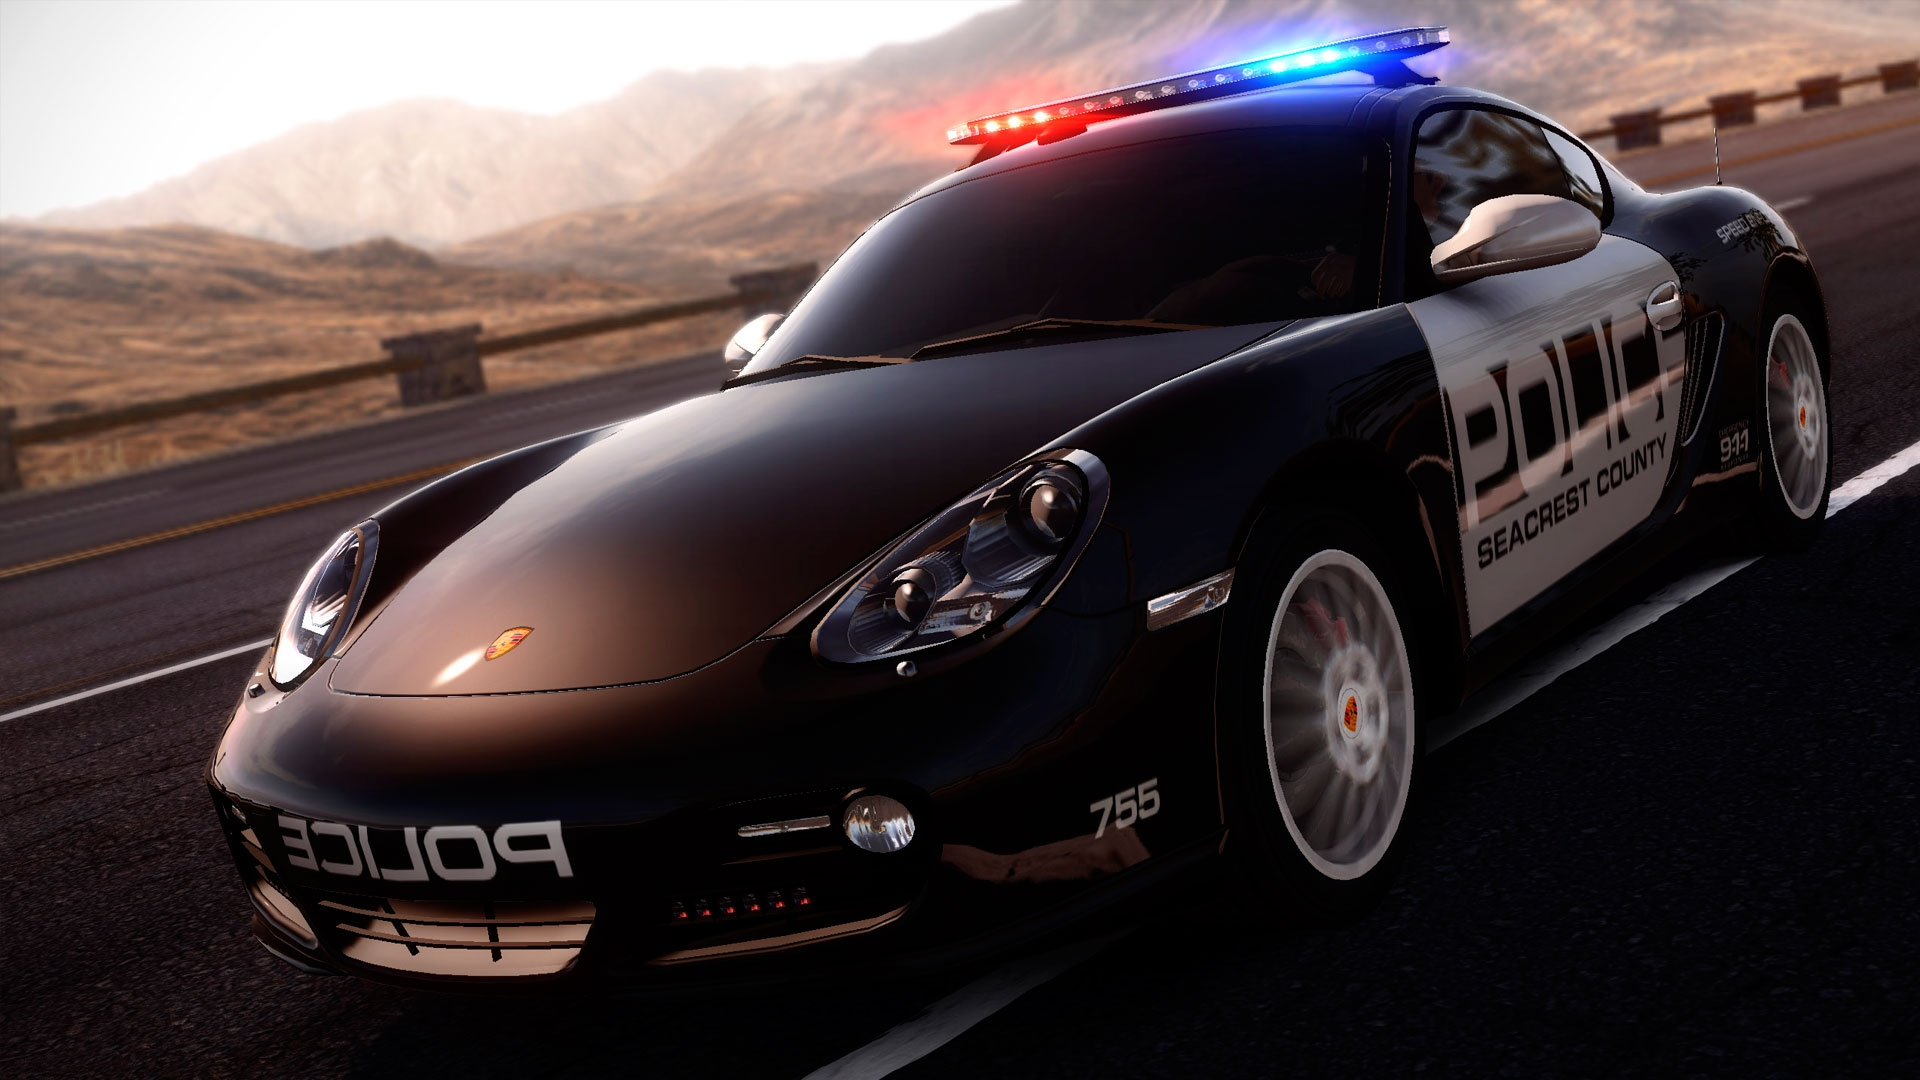 Police Car Hd Need For Speed Pursuit Porshe Wallszone 719943